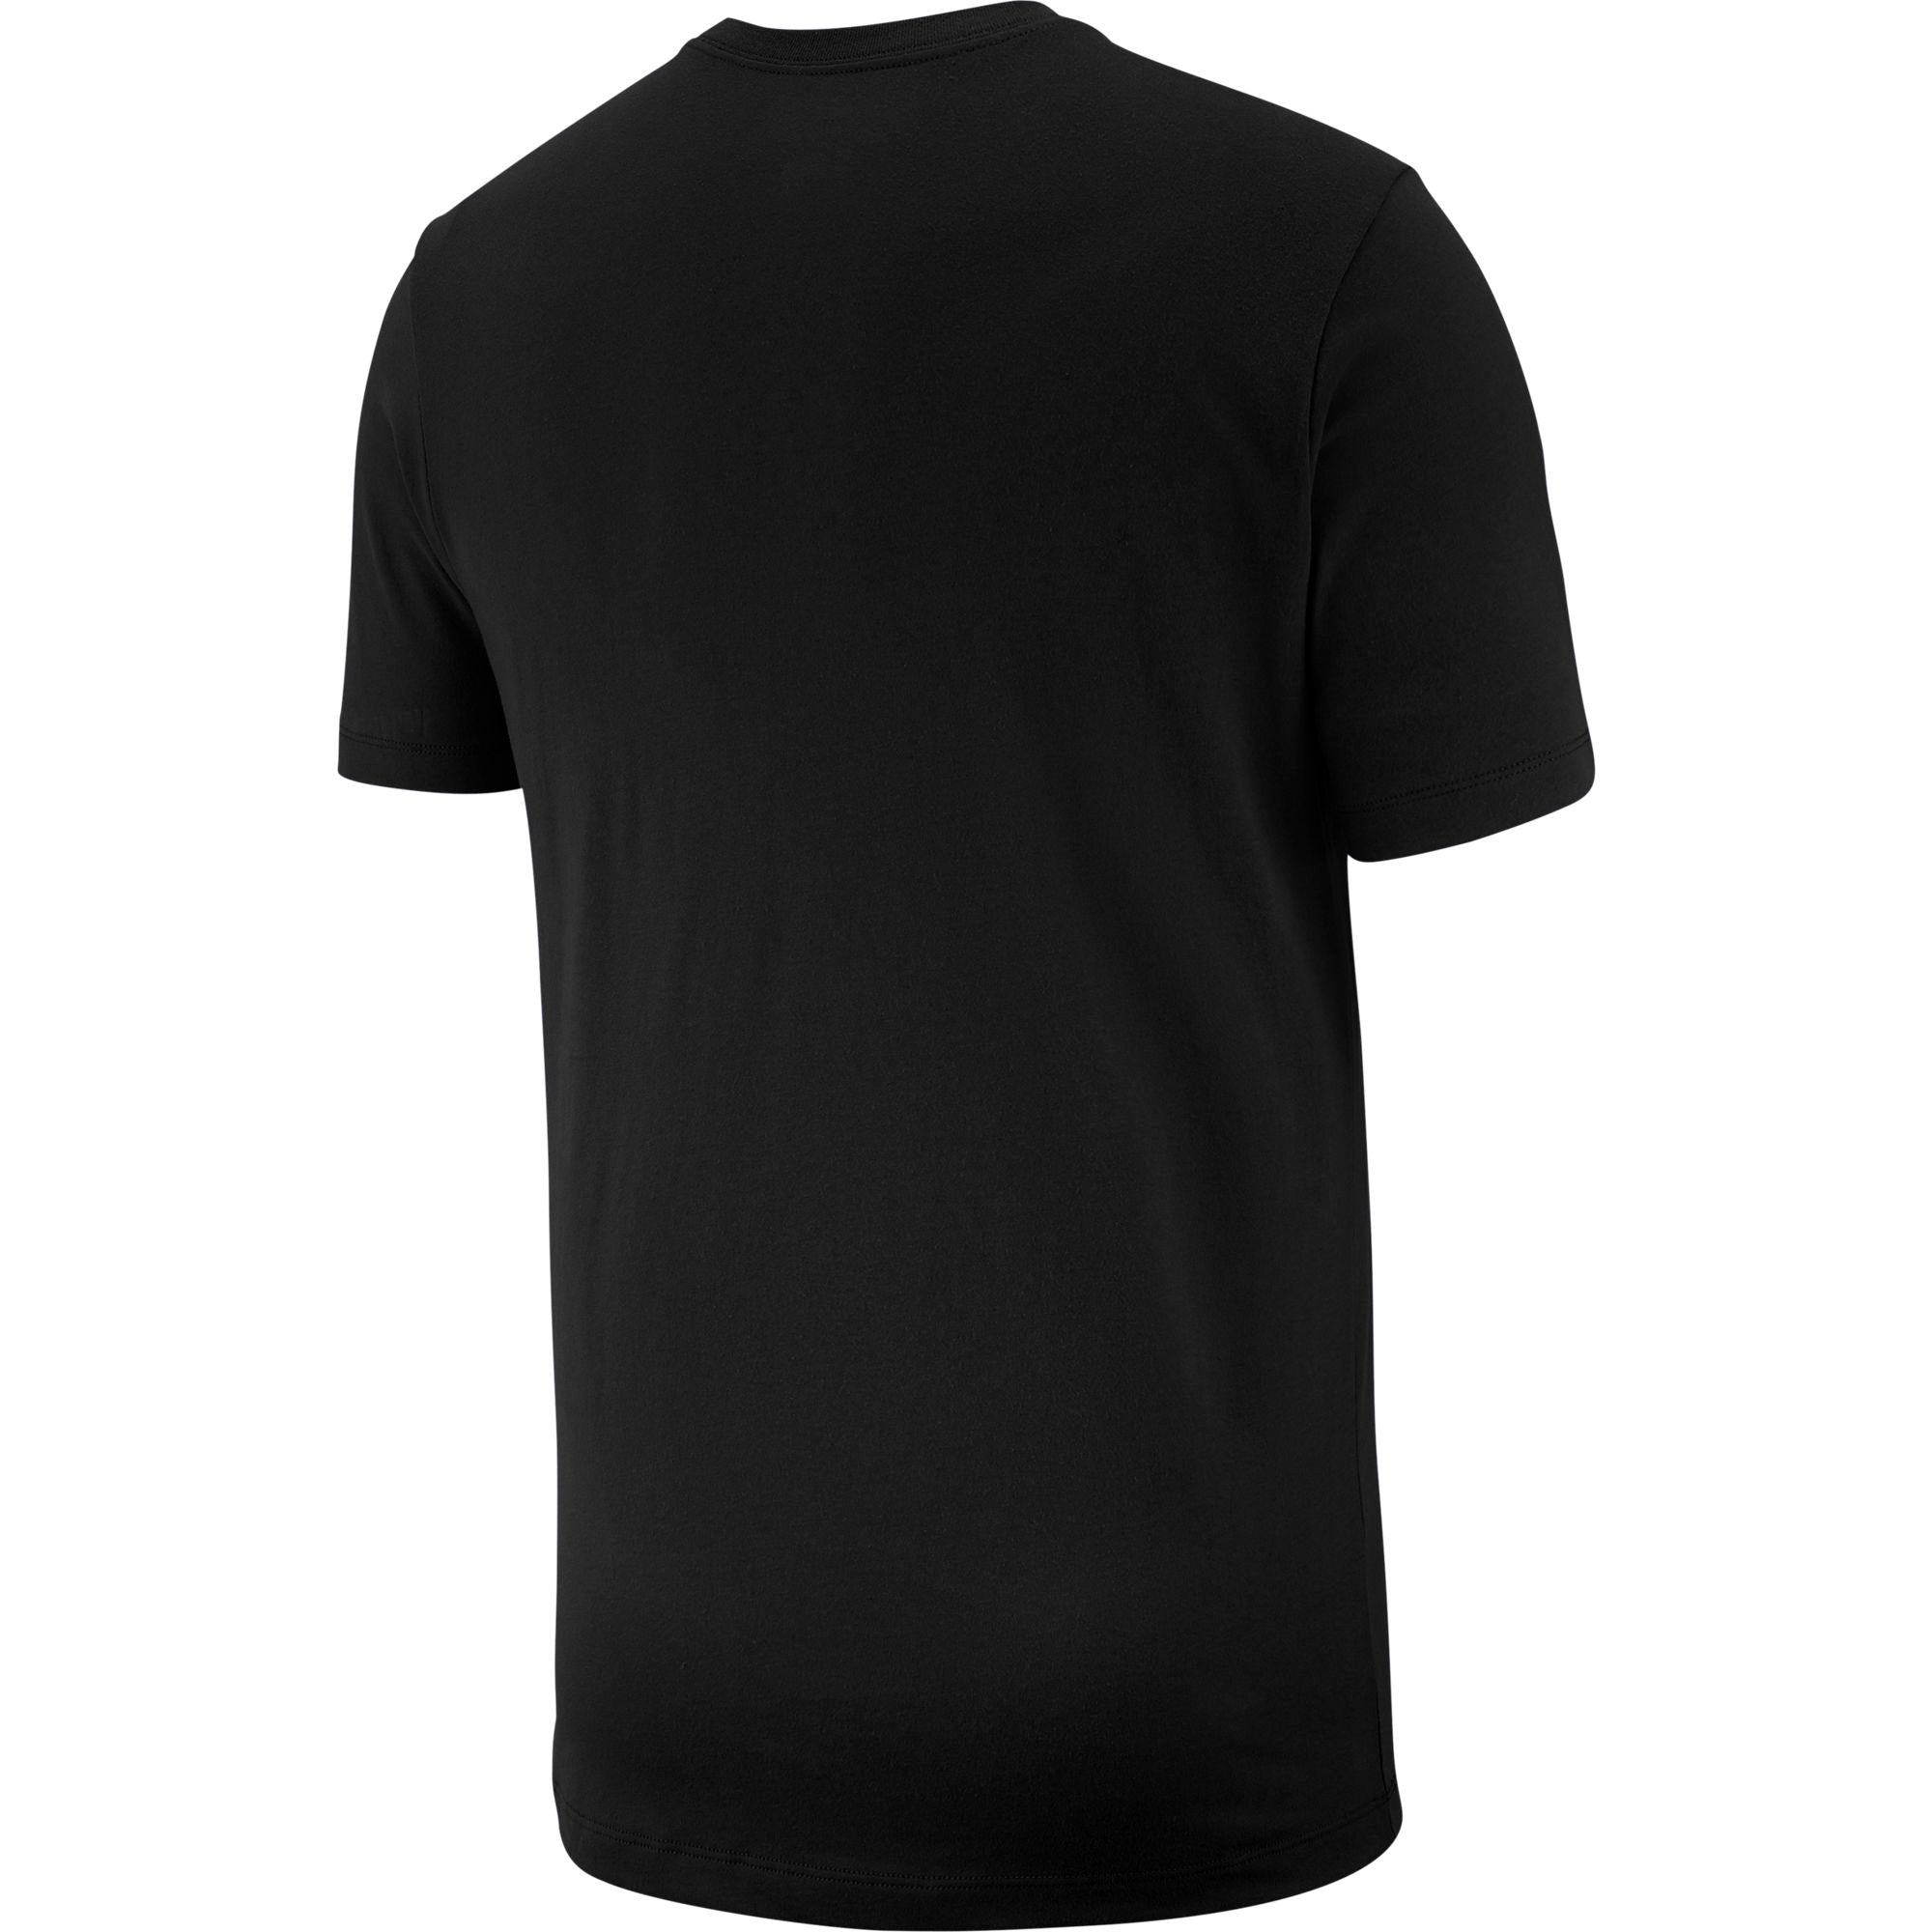 Nike Basketball Dri-Fit JUST DO IT Tee - Black